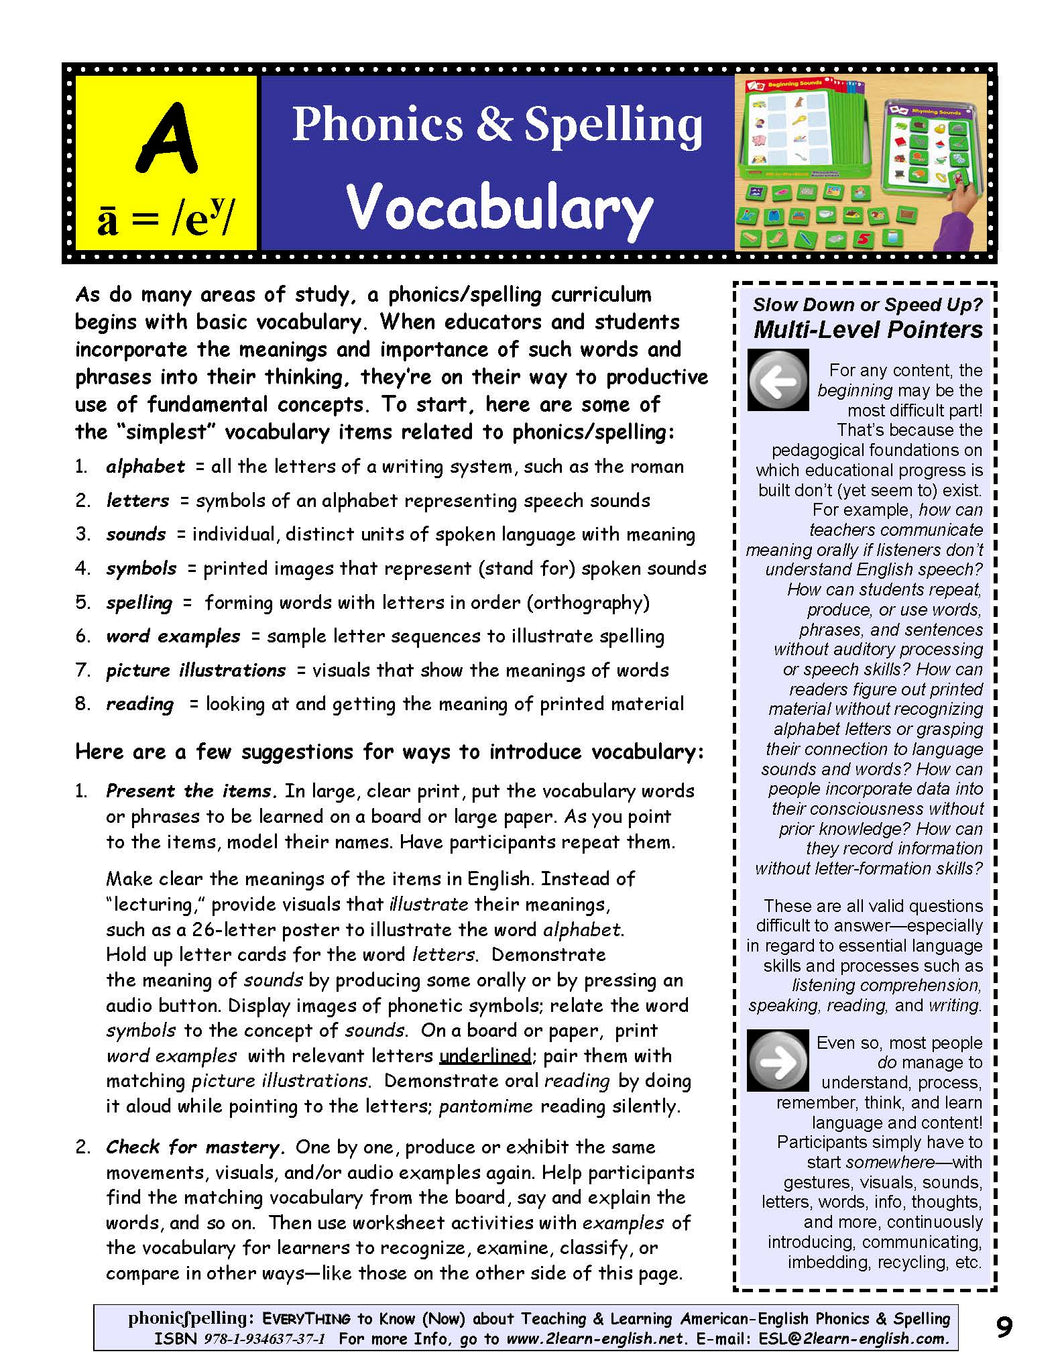 B-1.0 Start with Phonics & Spelling Concepts